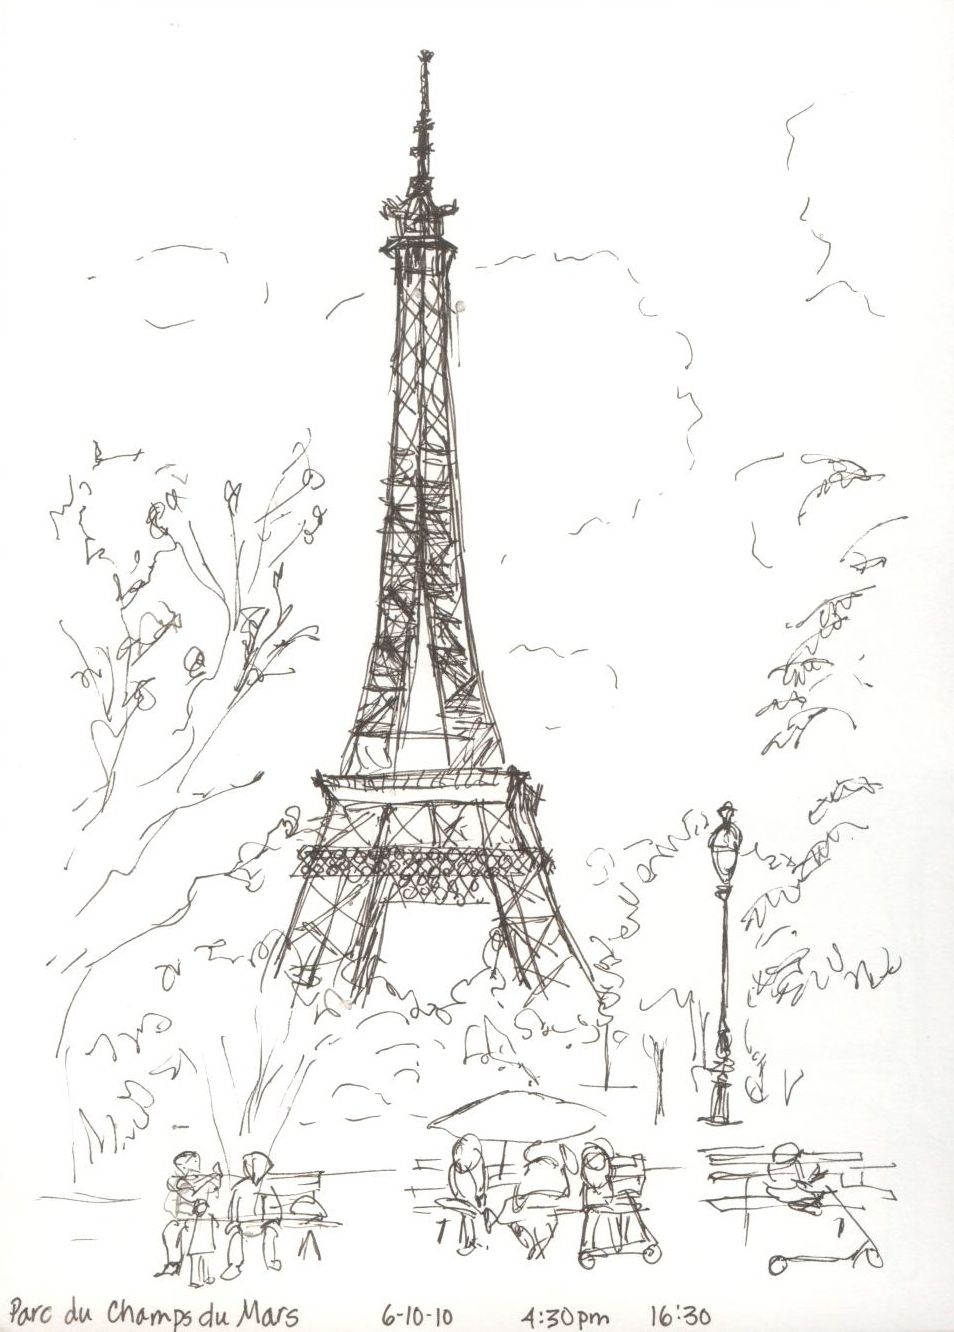 Paris sketch black and white draw2c in 2019 paris